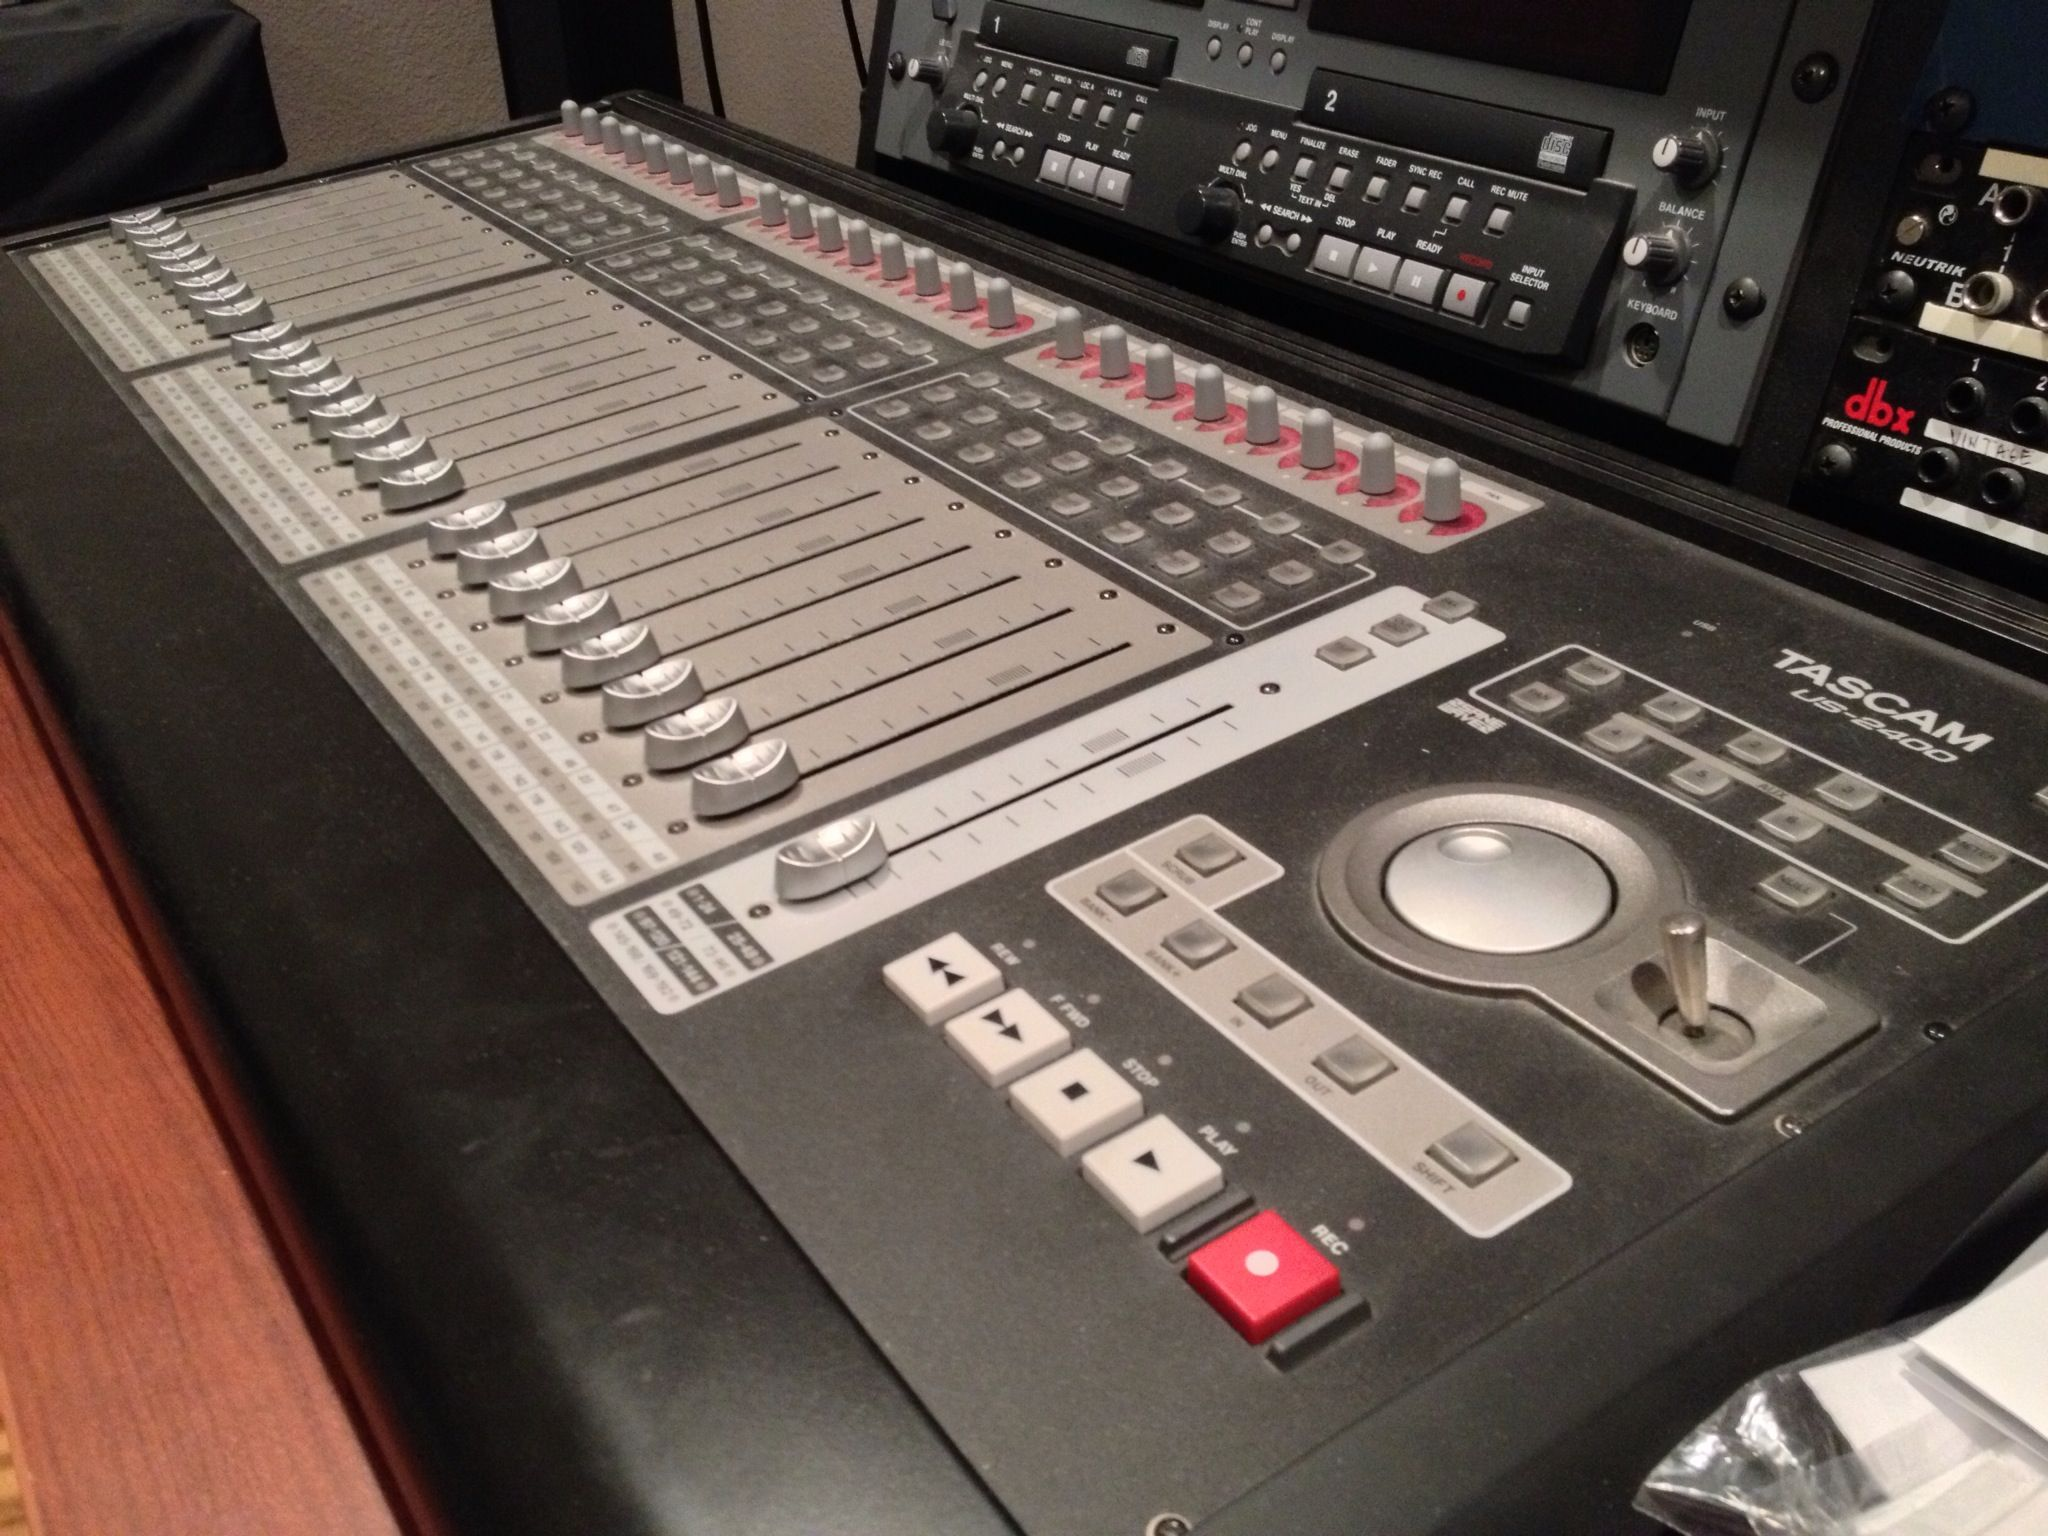 Tascam US-2400 control surface for pro tools, cubase, logic, and